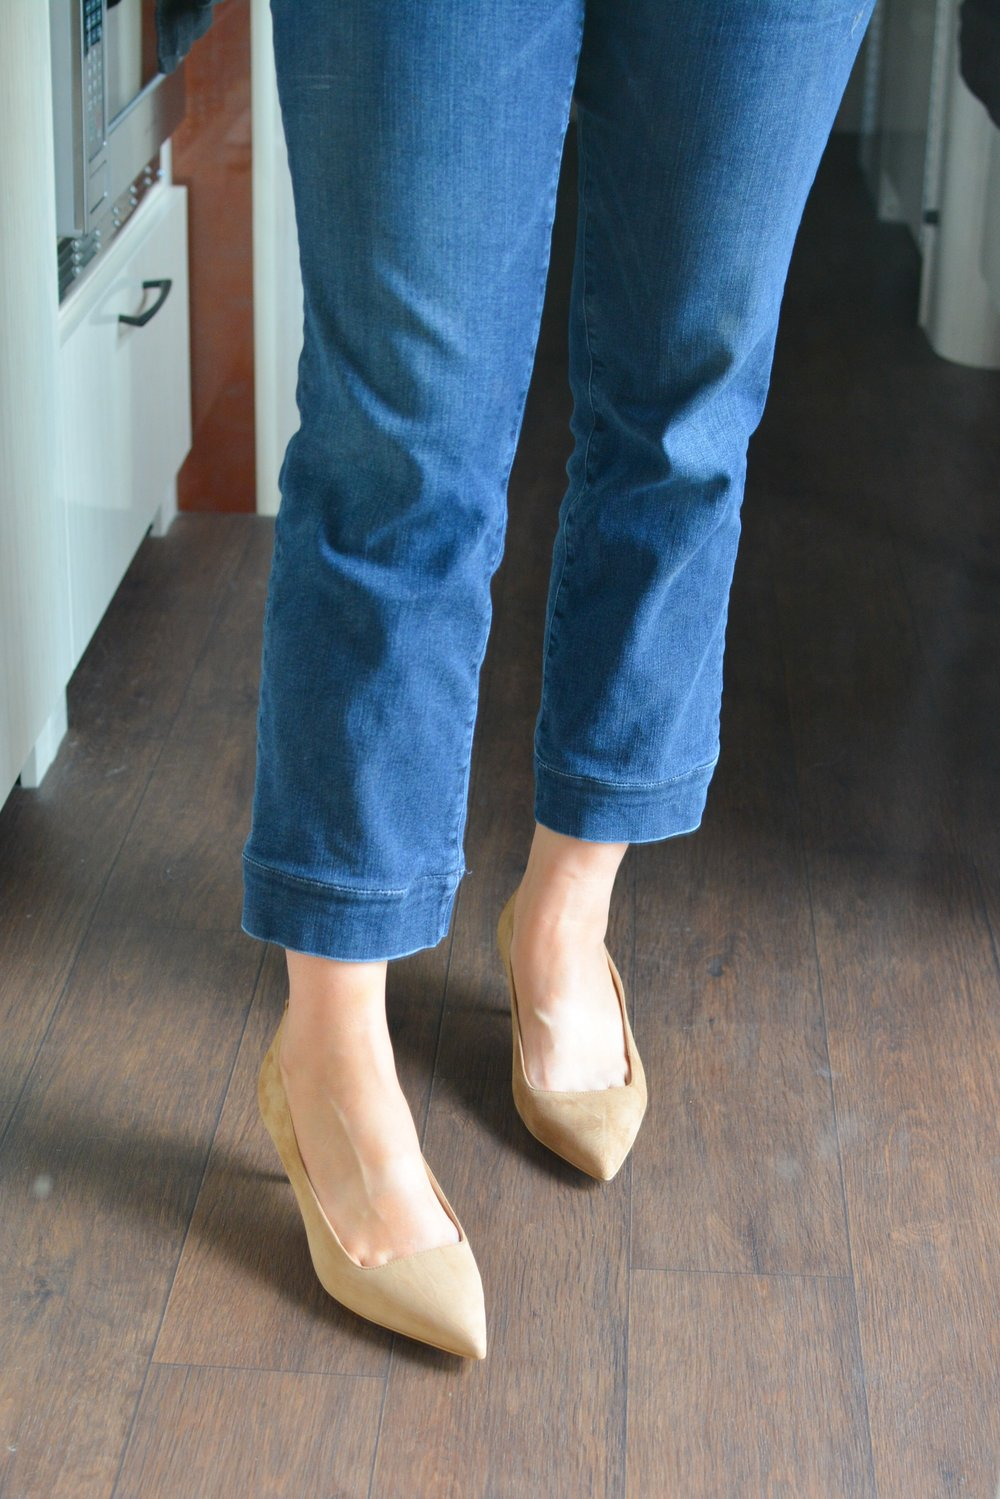 Everlane Review The Editor Heel (2 of 4)-min.jpg